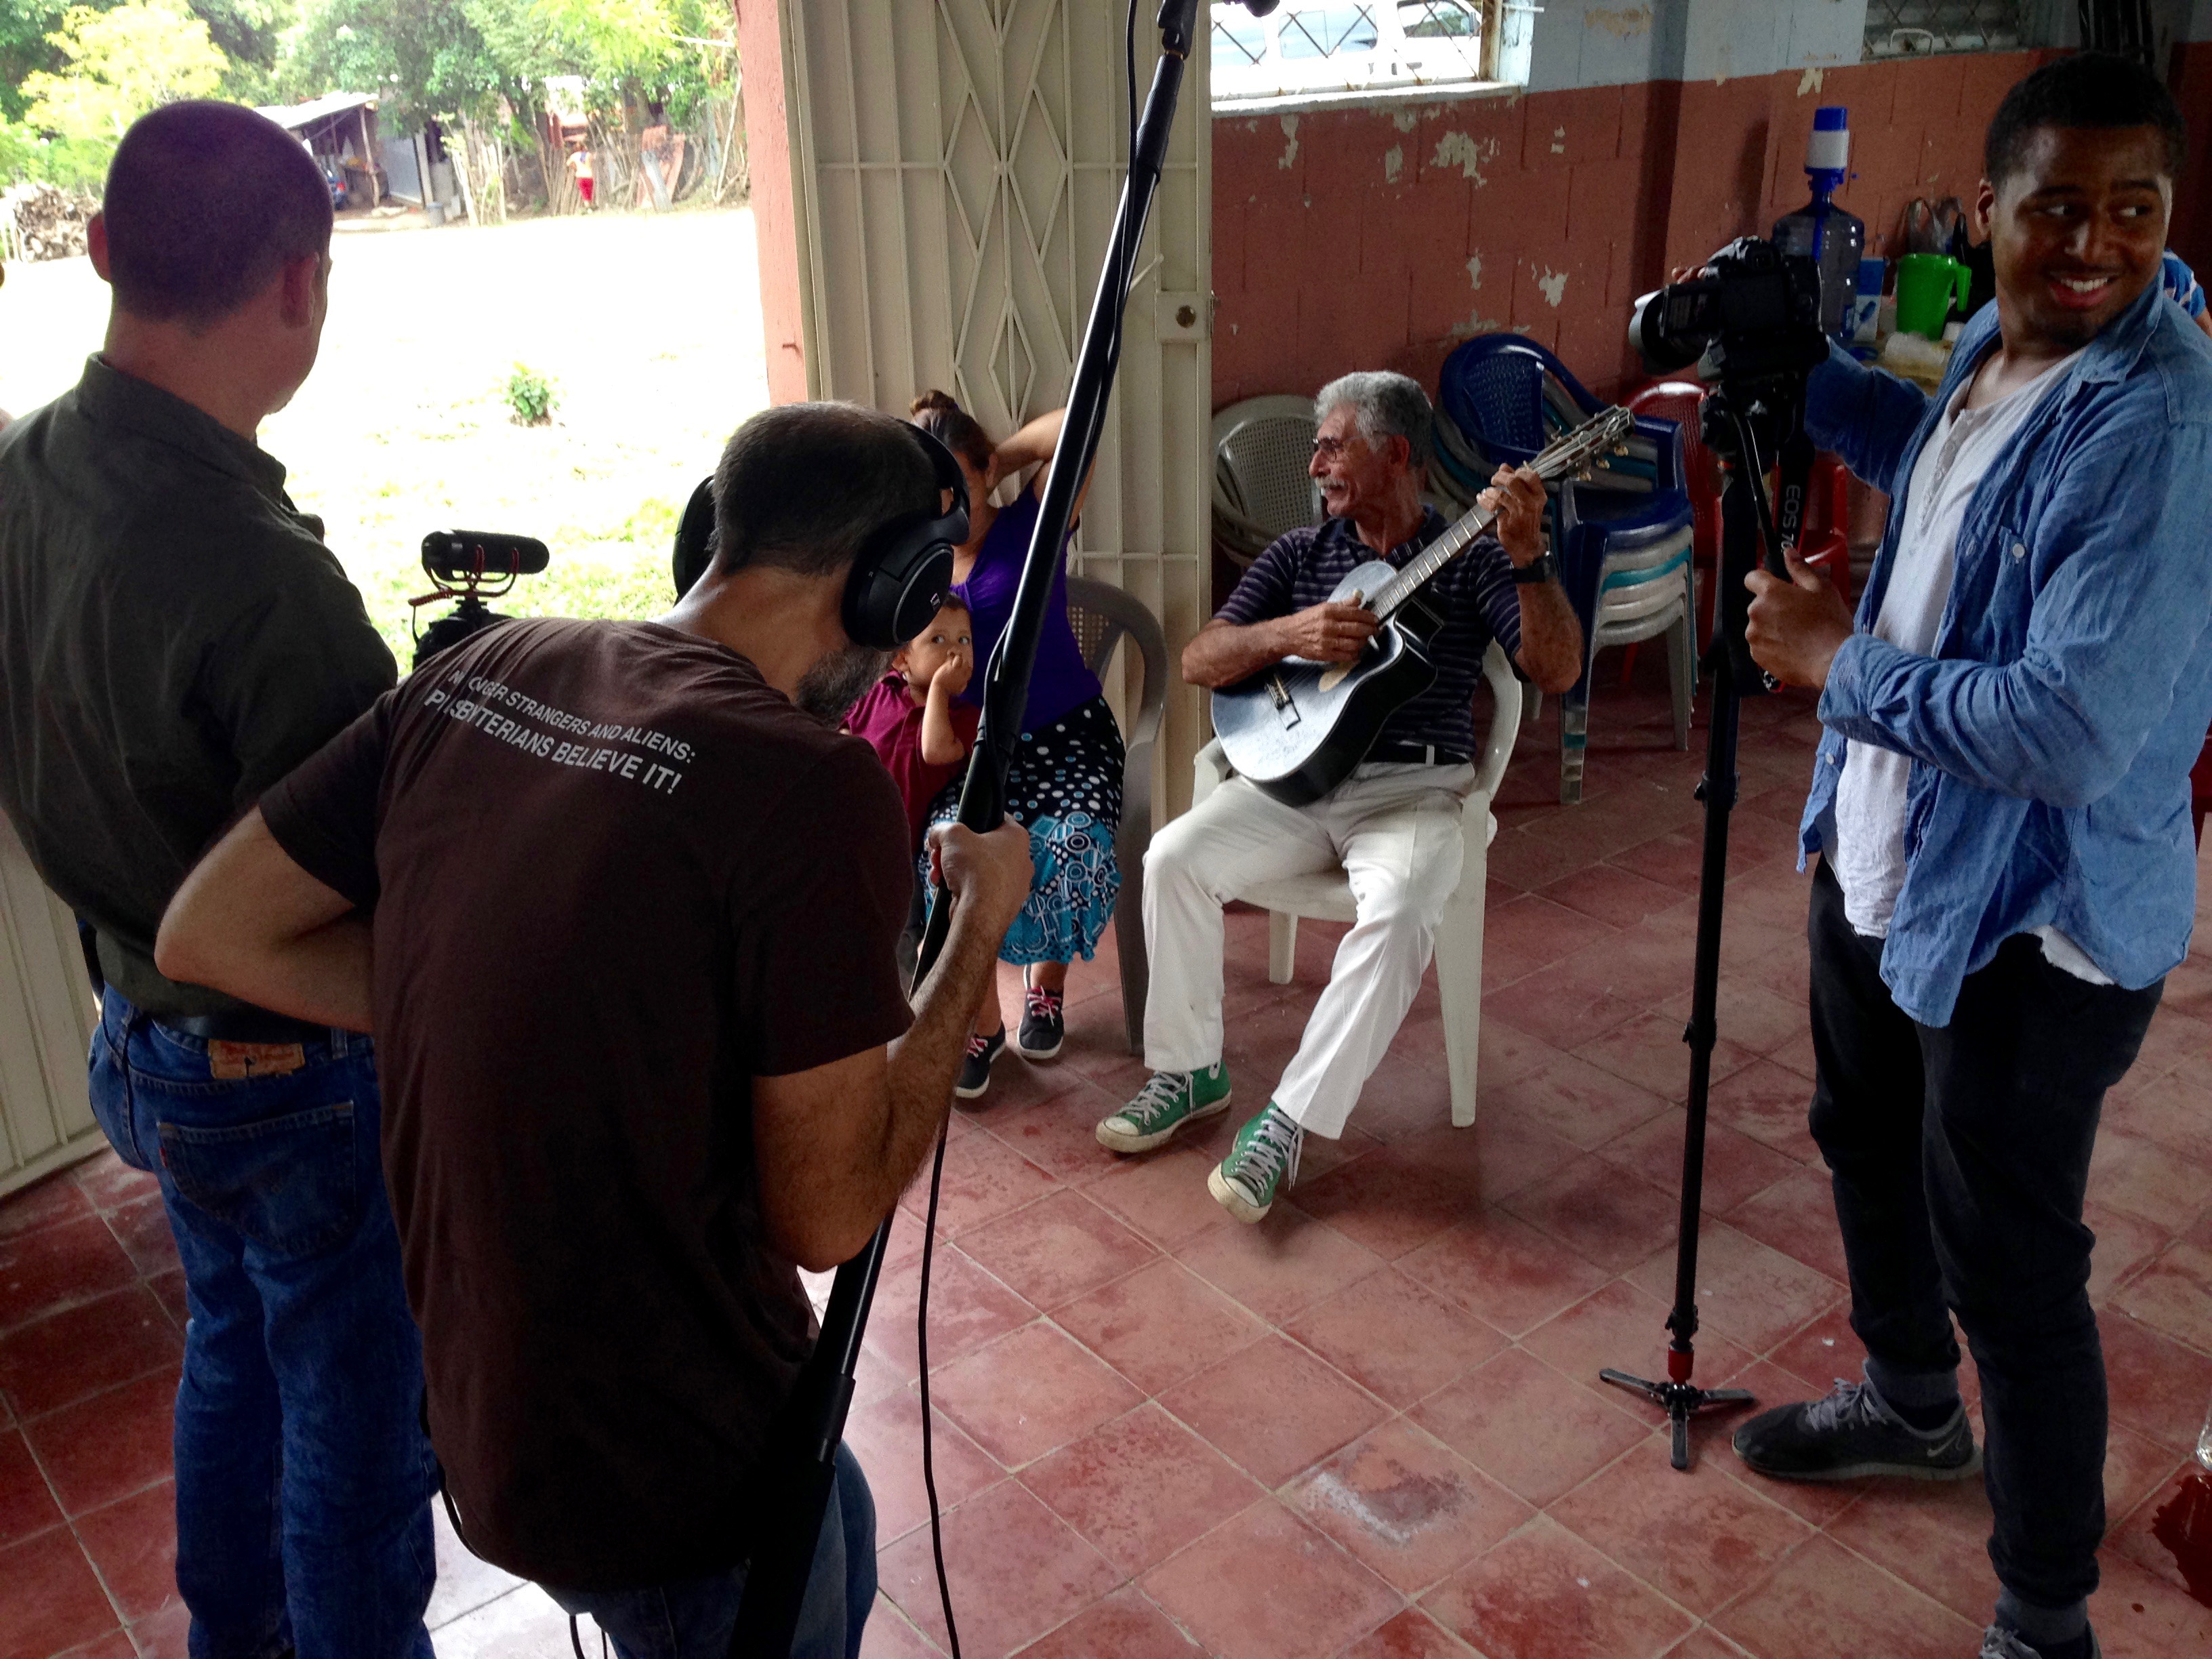 Videography team capturing a local musician